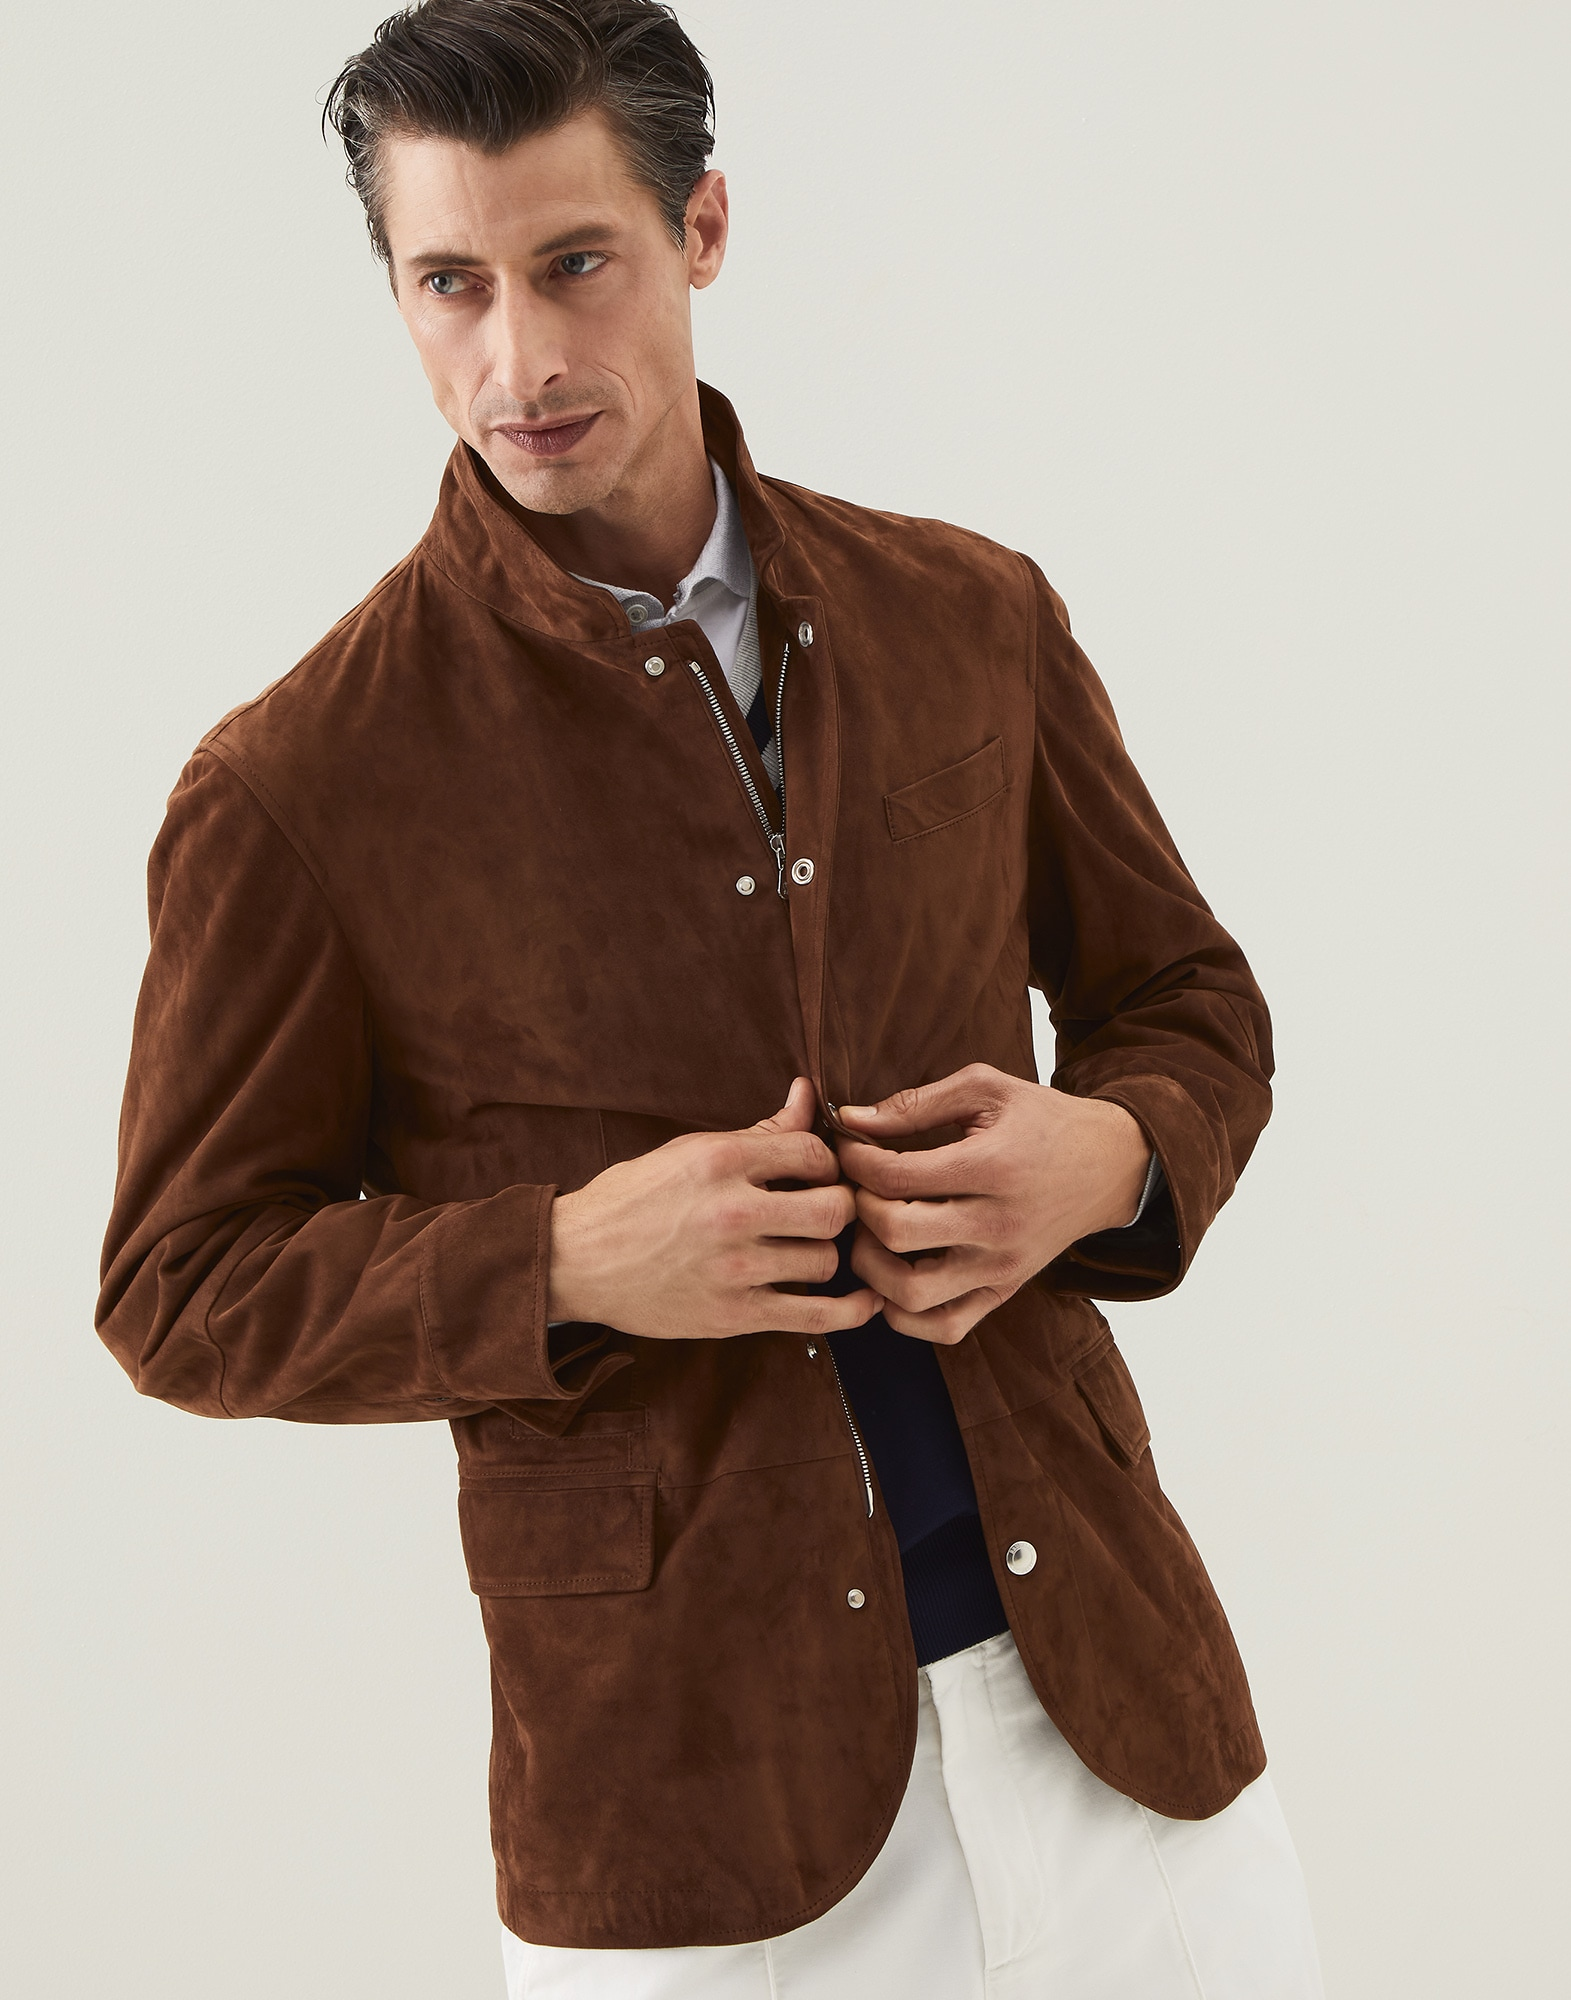 Jacket-style Outerwear - Front